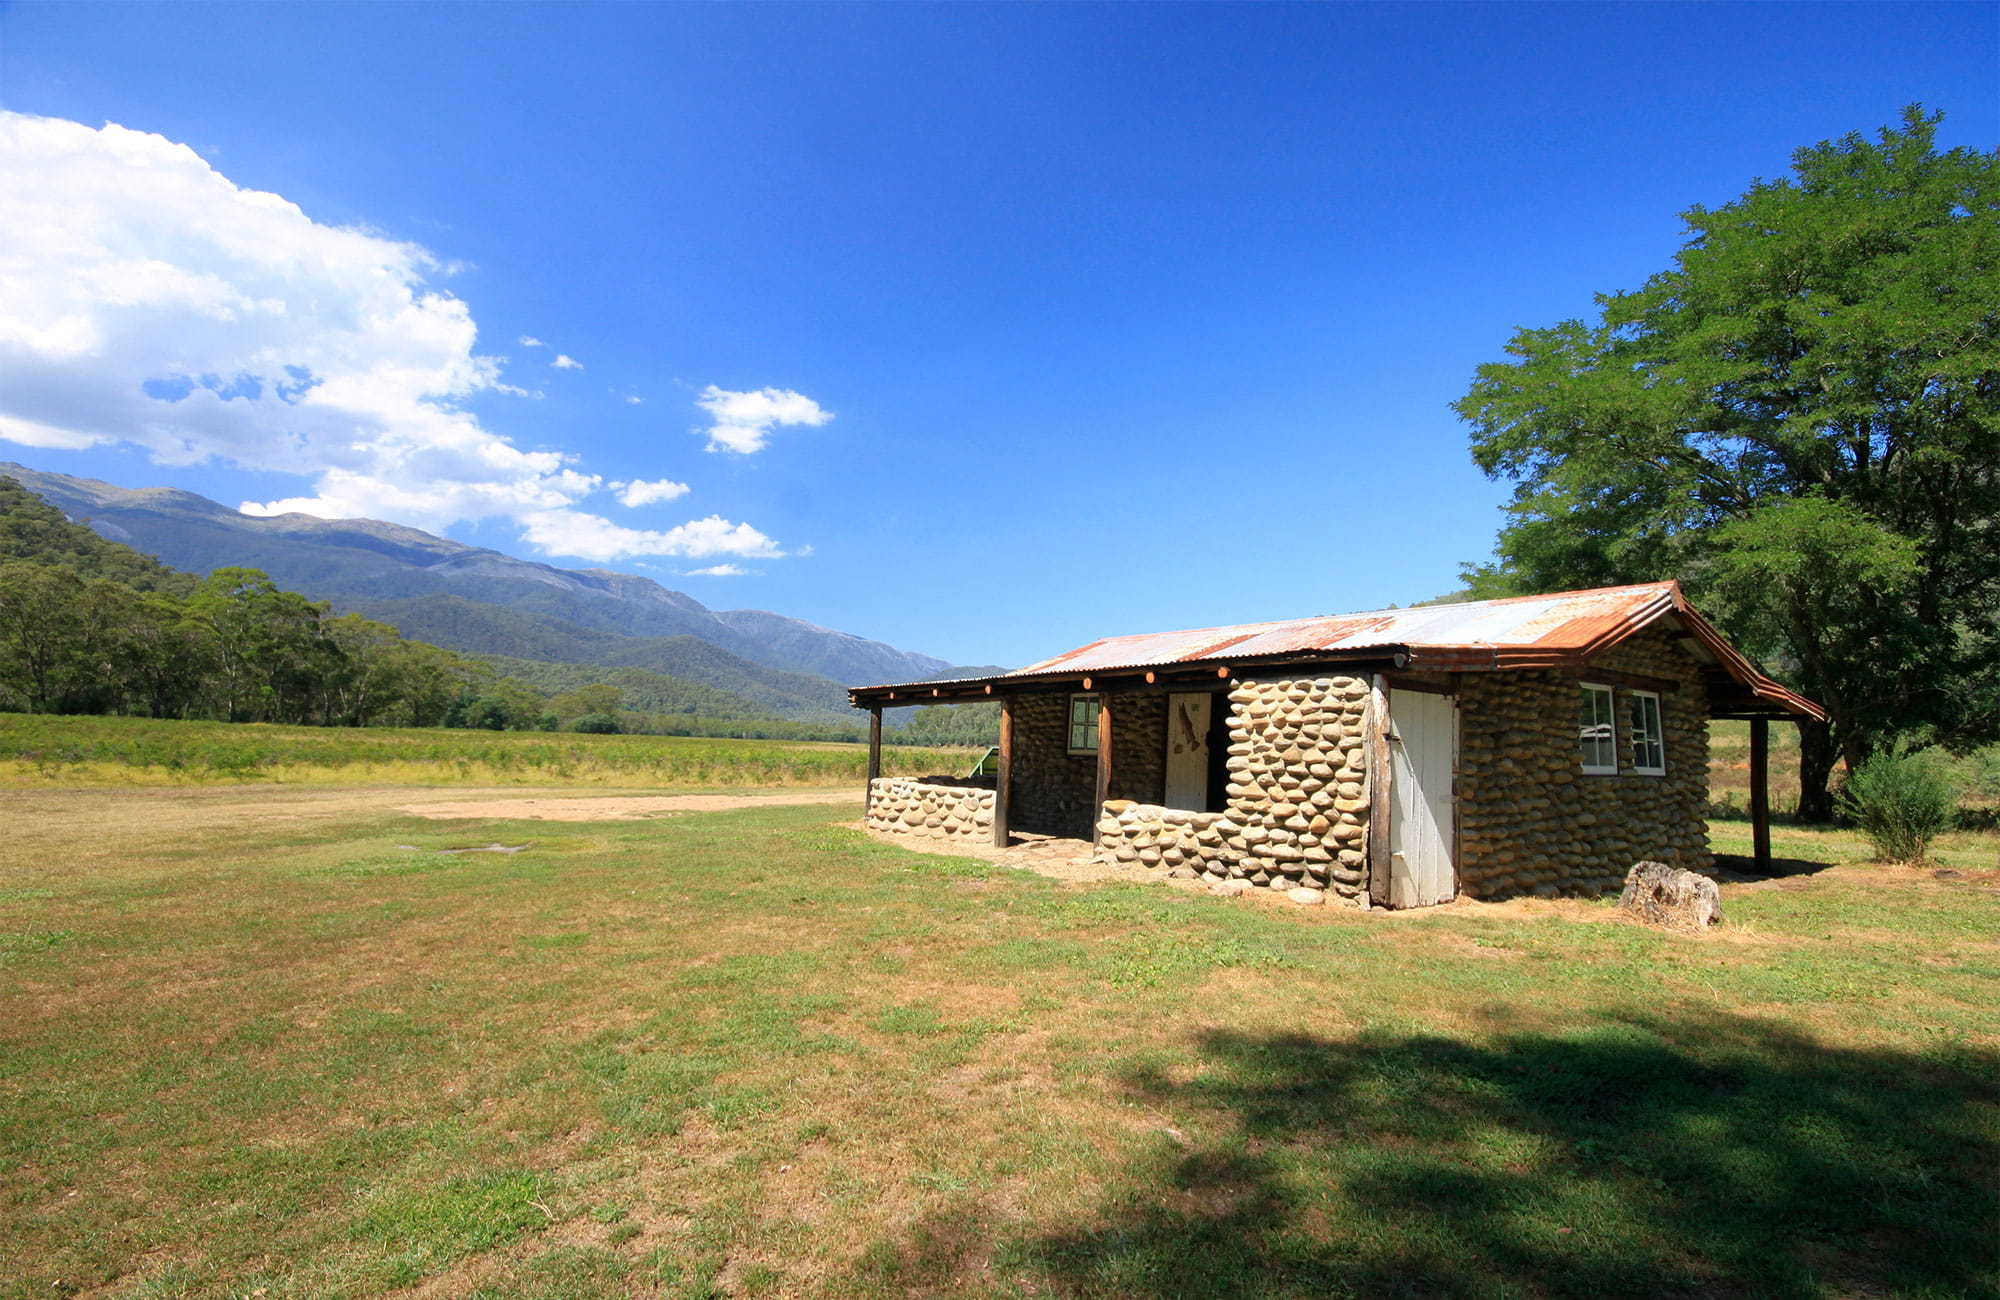 Historic hut on a grassy plain with mountains in the background. Photo: Elinor Sheargold/OEH.